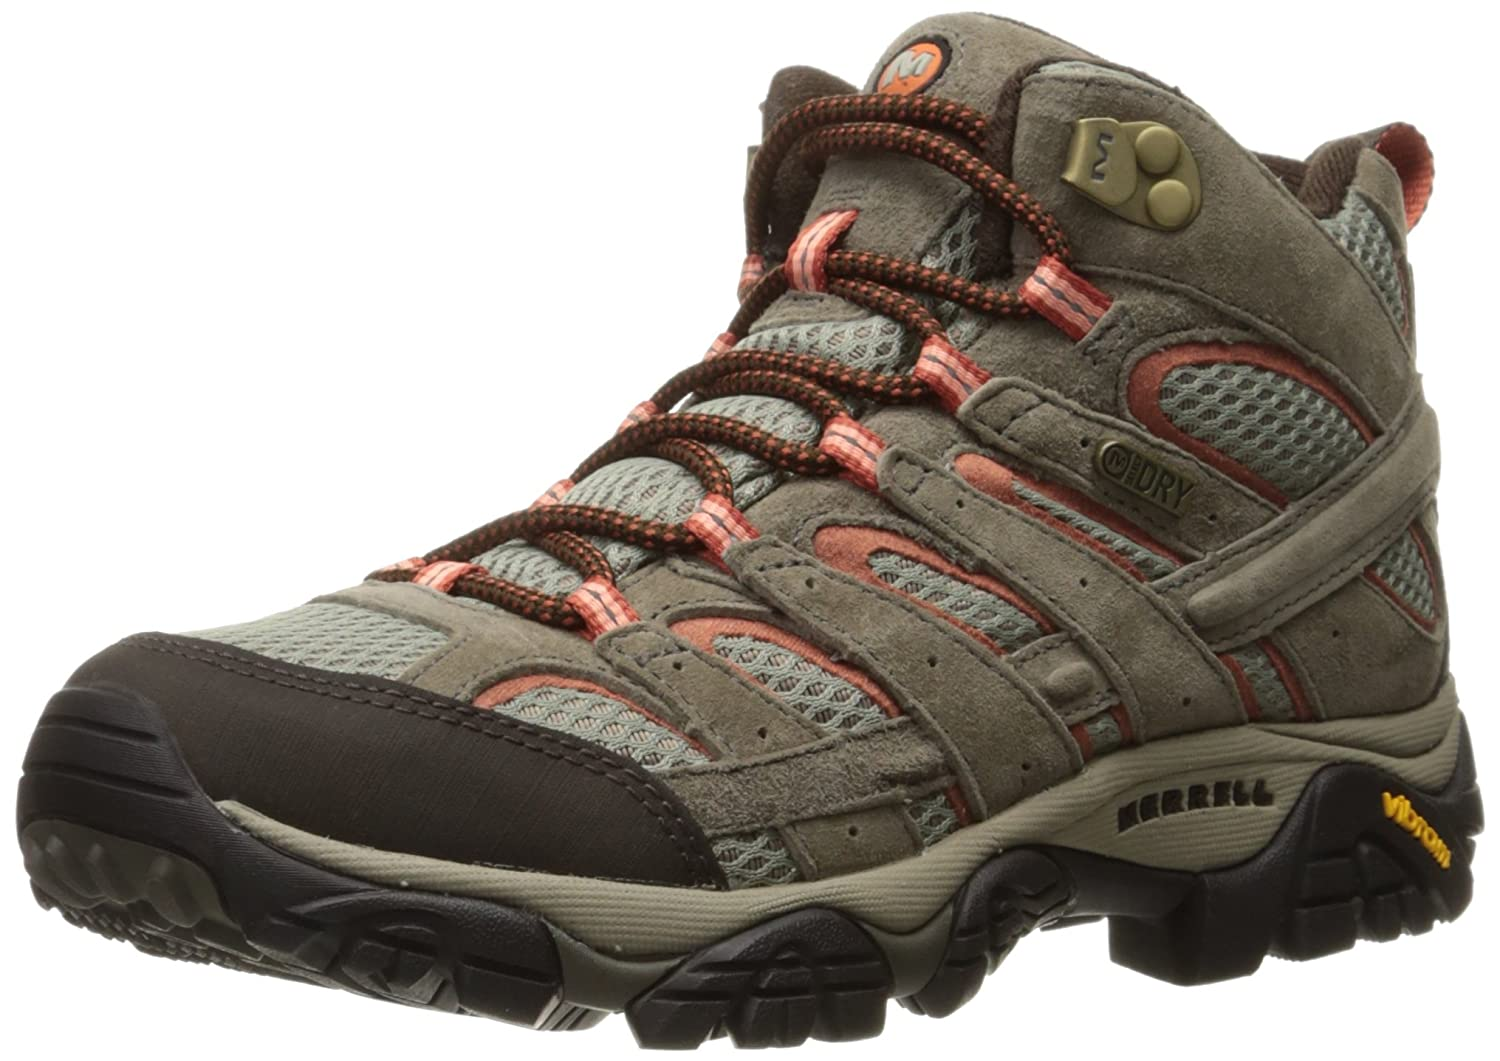 Merrell Women's Moab 2 Mid Waterproof Hiking Boot B01HFL7JAU 9 W US|Bungee Cord